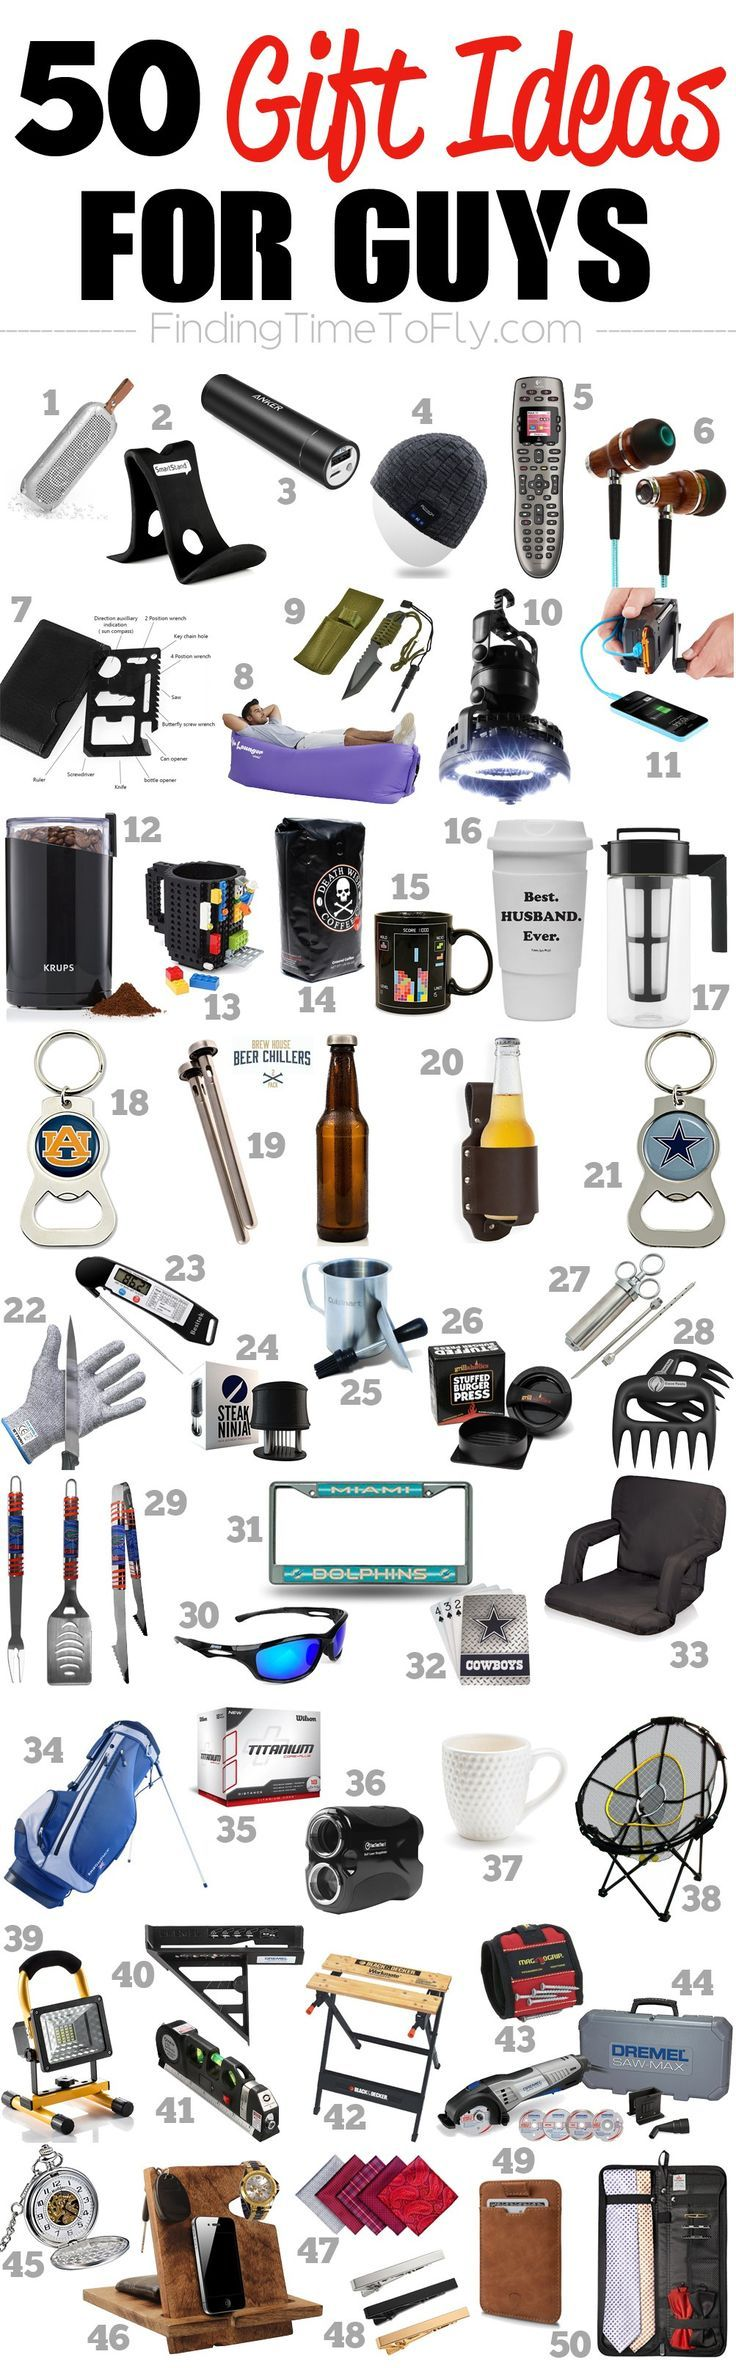 Saving This List Of 50 Gifts For Guys A Great List Of Gift Ideas For Men To Shop For Birthdays Valentine S Day Boyfriend Gifts Mens Birthday Gifts Mens Gifts